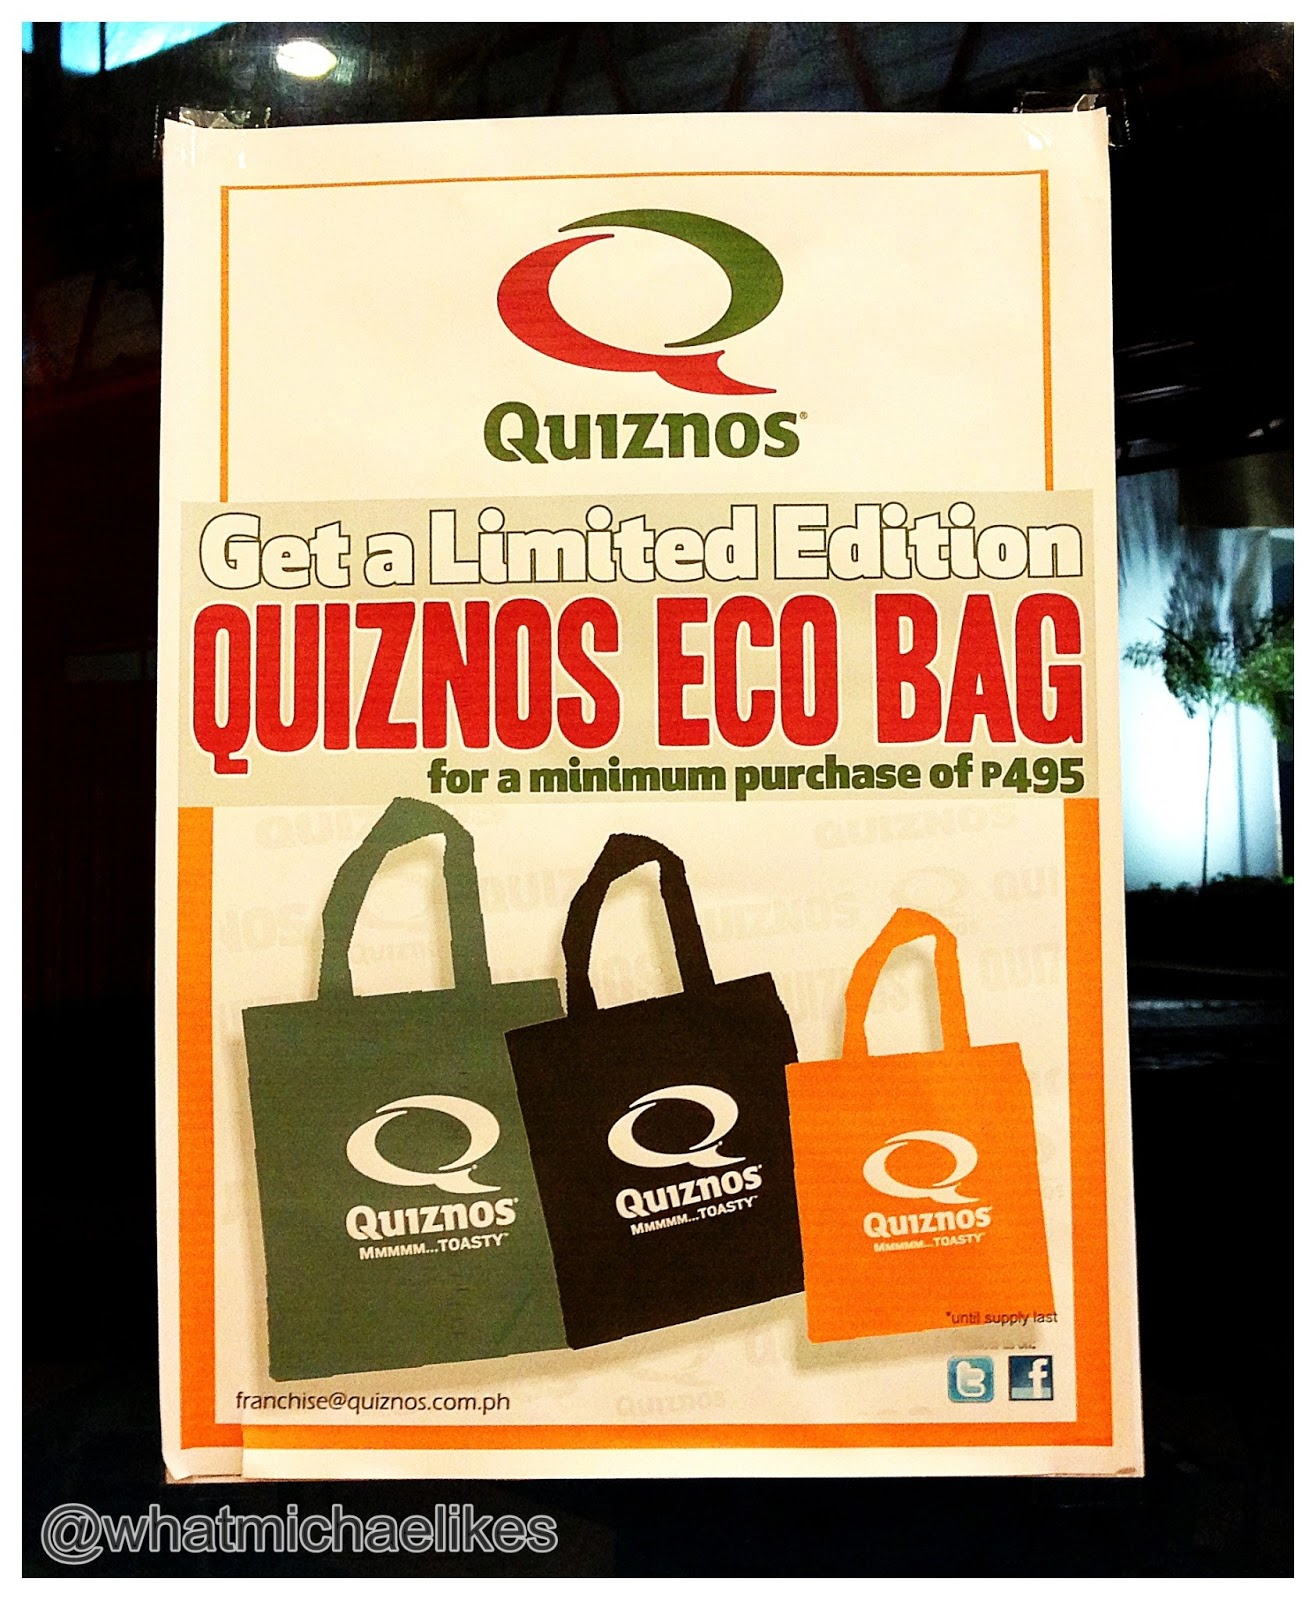 More On Quiznos, They're Trying Their Best Also To Keep Our Environment  Clean By Supporting The Antiplastic Ordinance Here In Quezon City